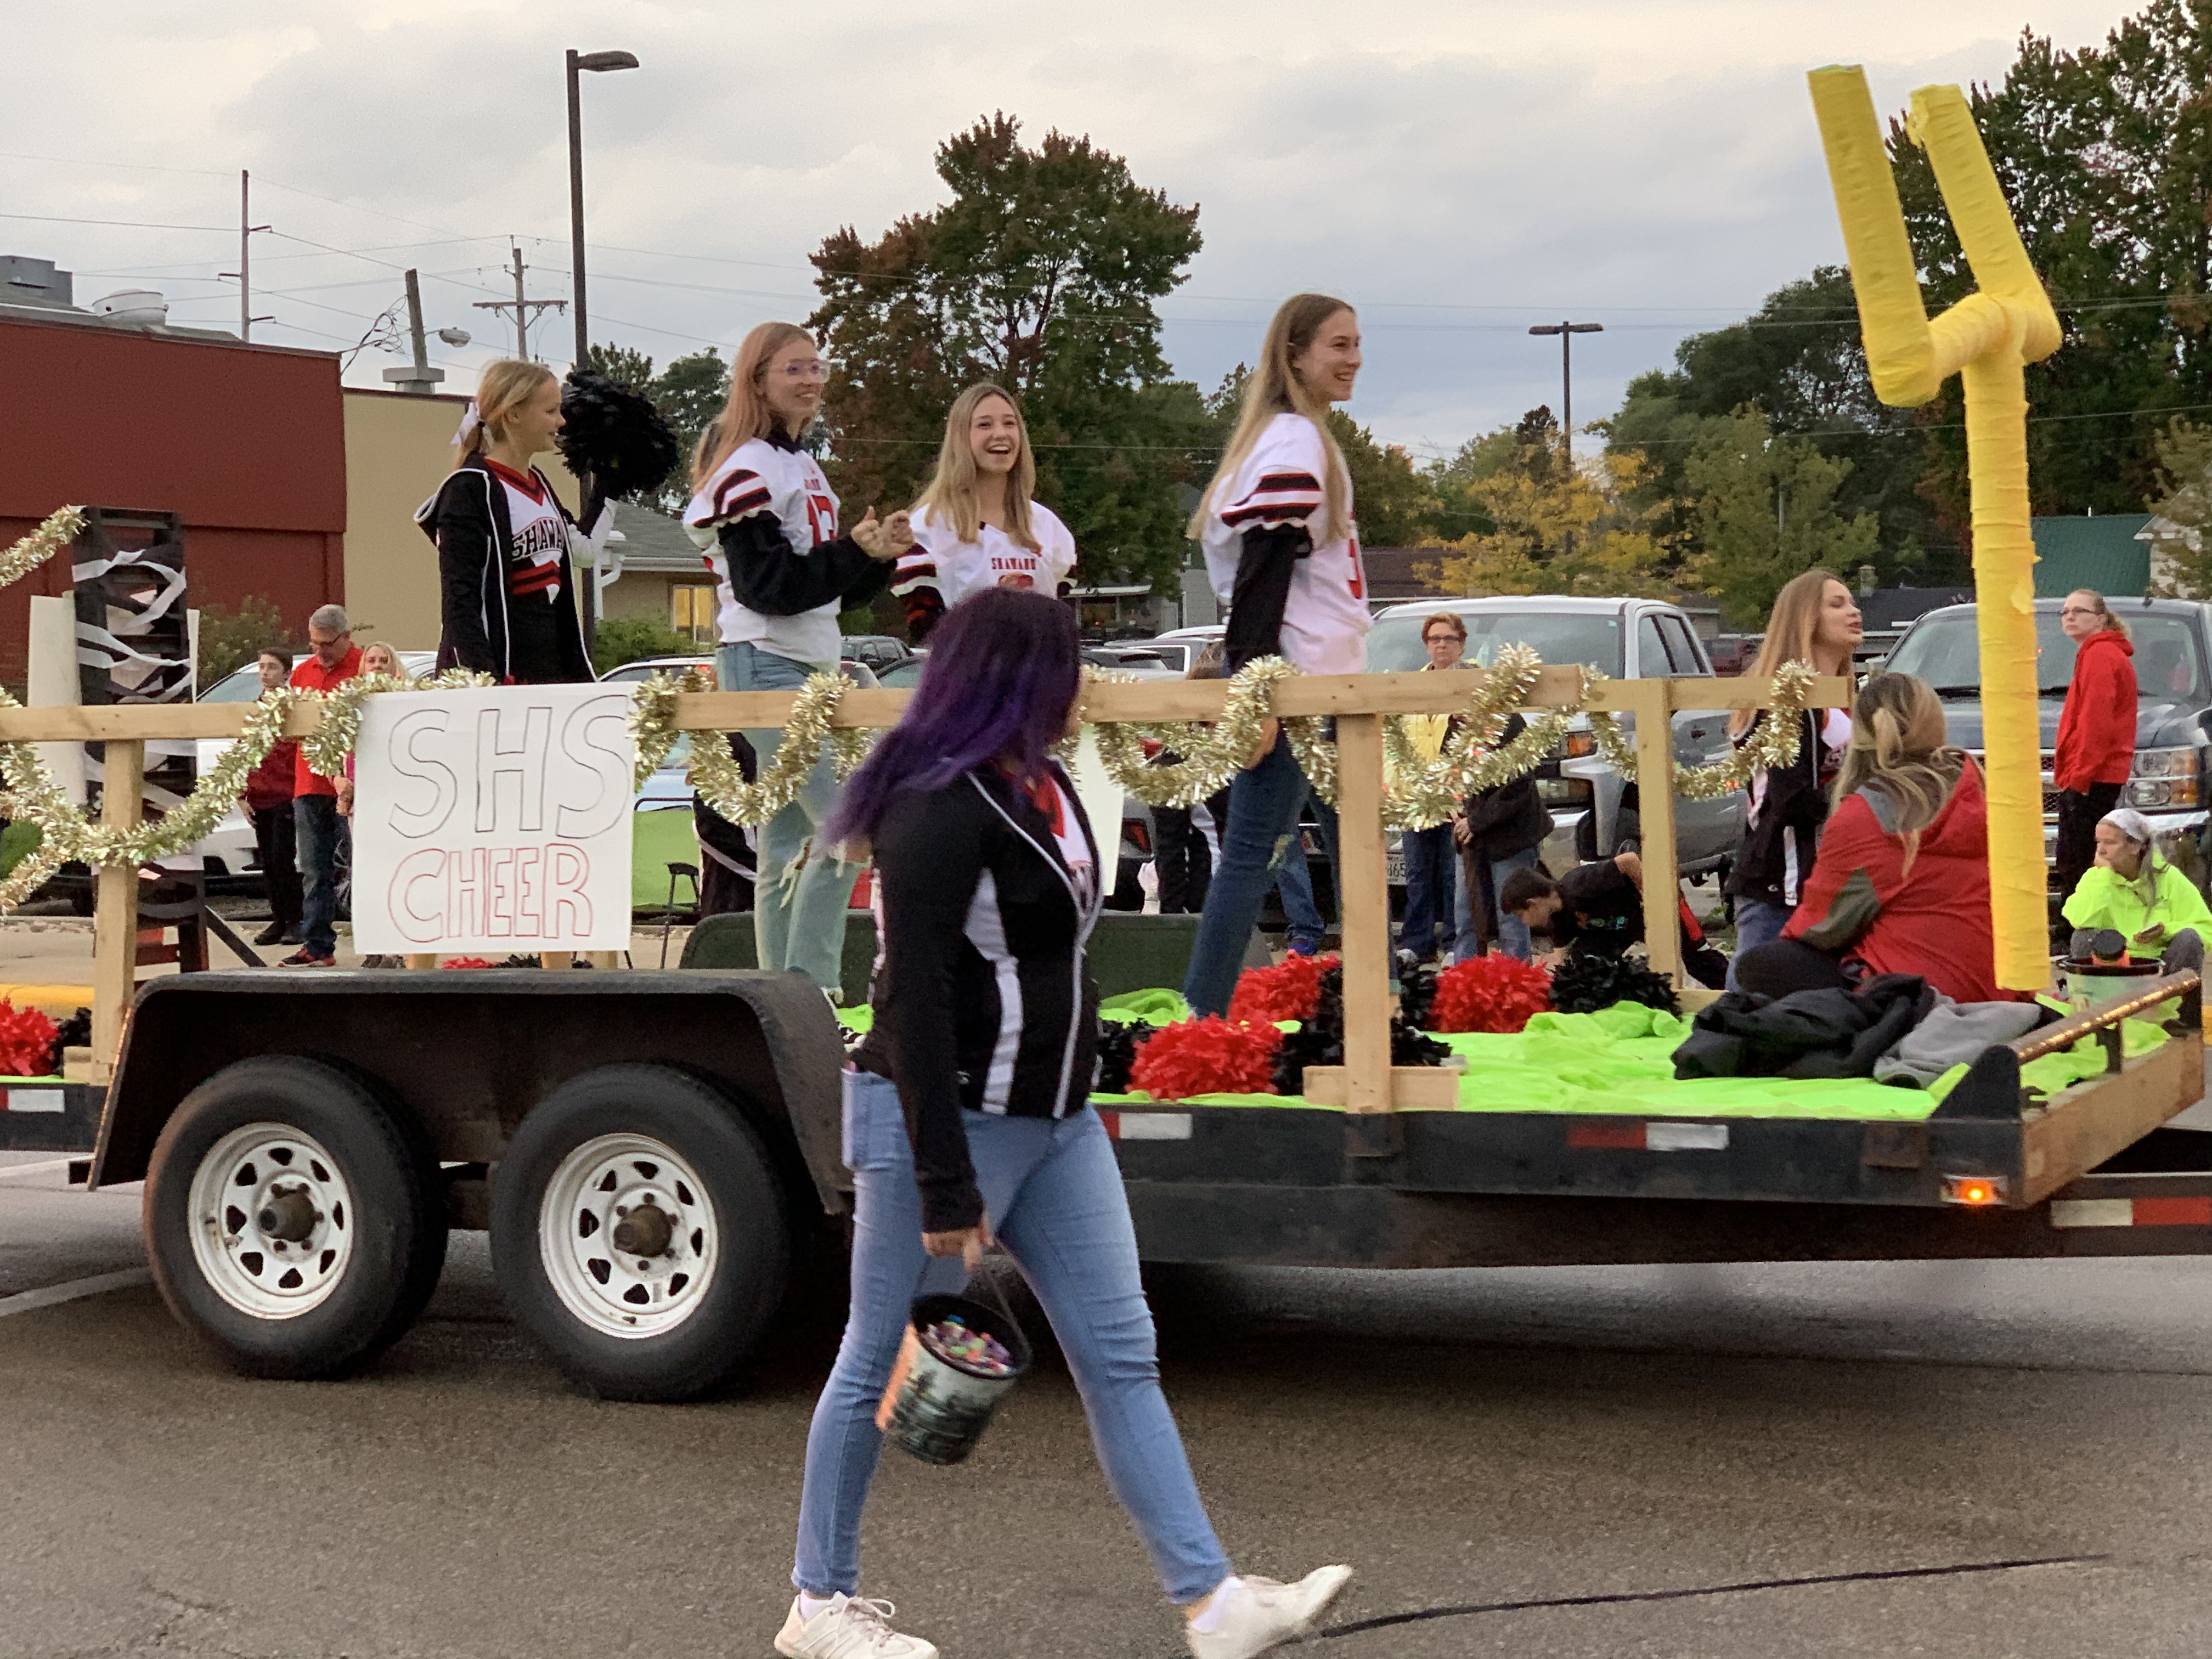 The Shawano cheer squad marches down Main Street in a football field-themed float during the Sept. 24 homecoming parade.Luke Reimer | NEW Media